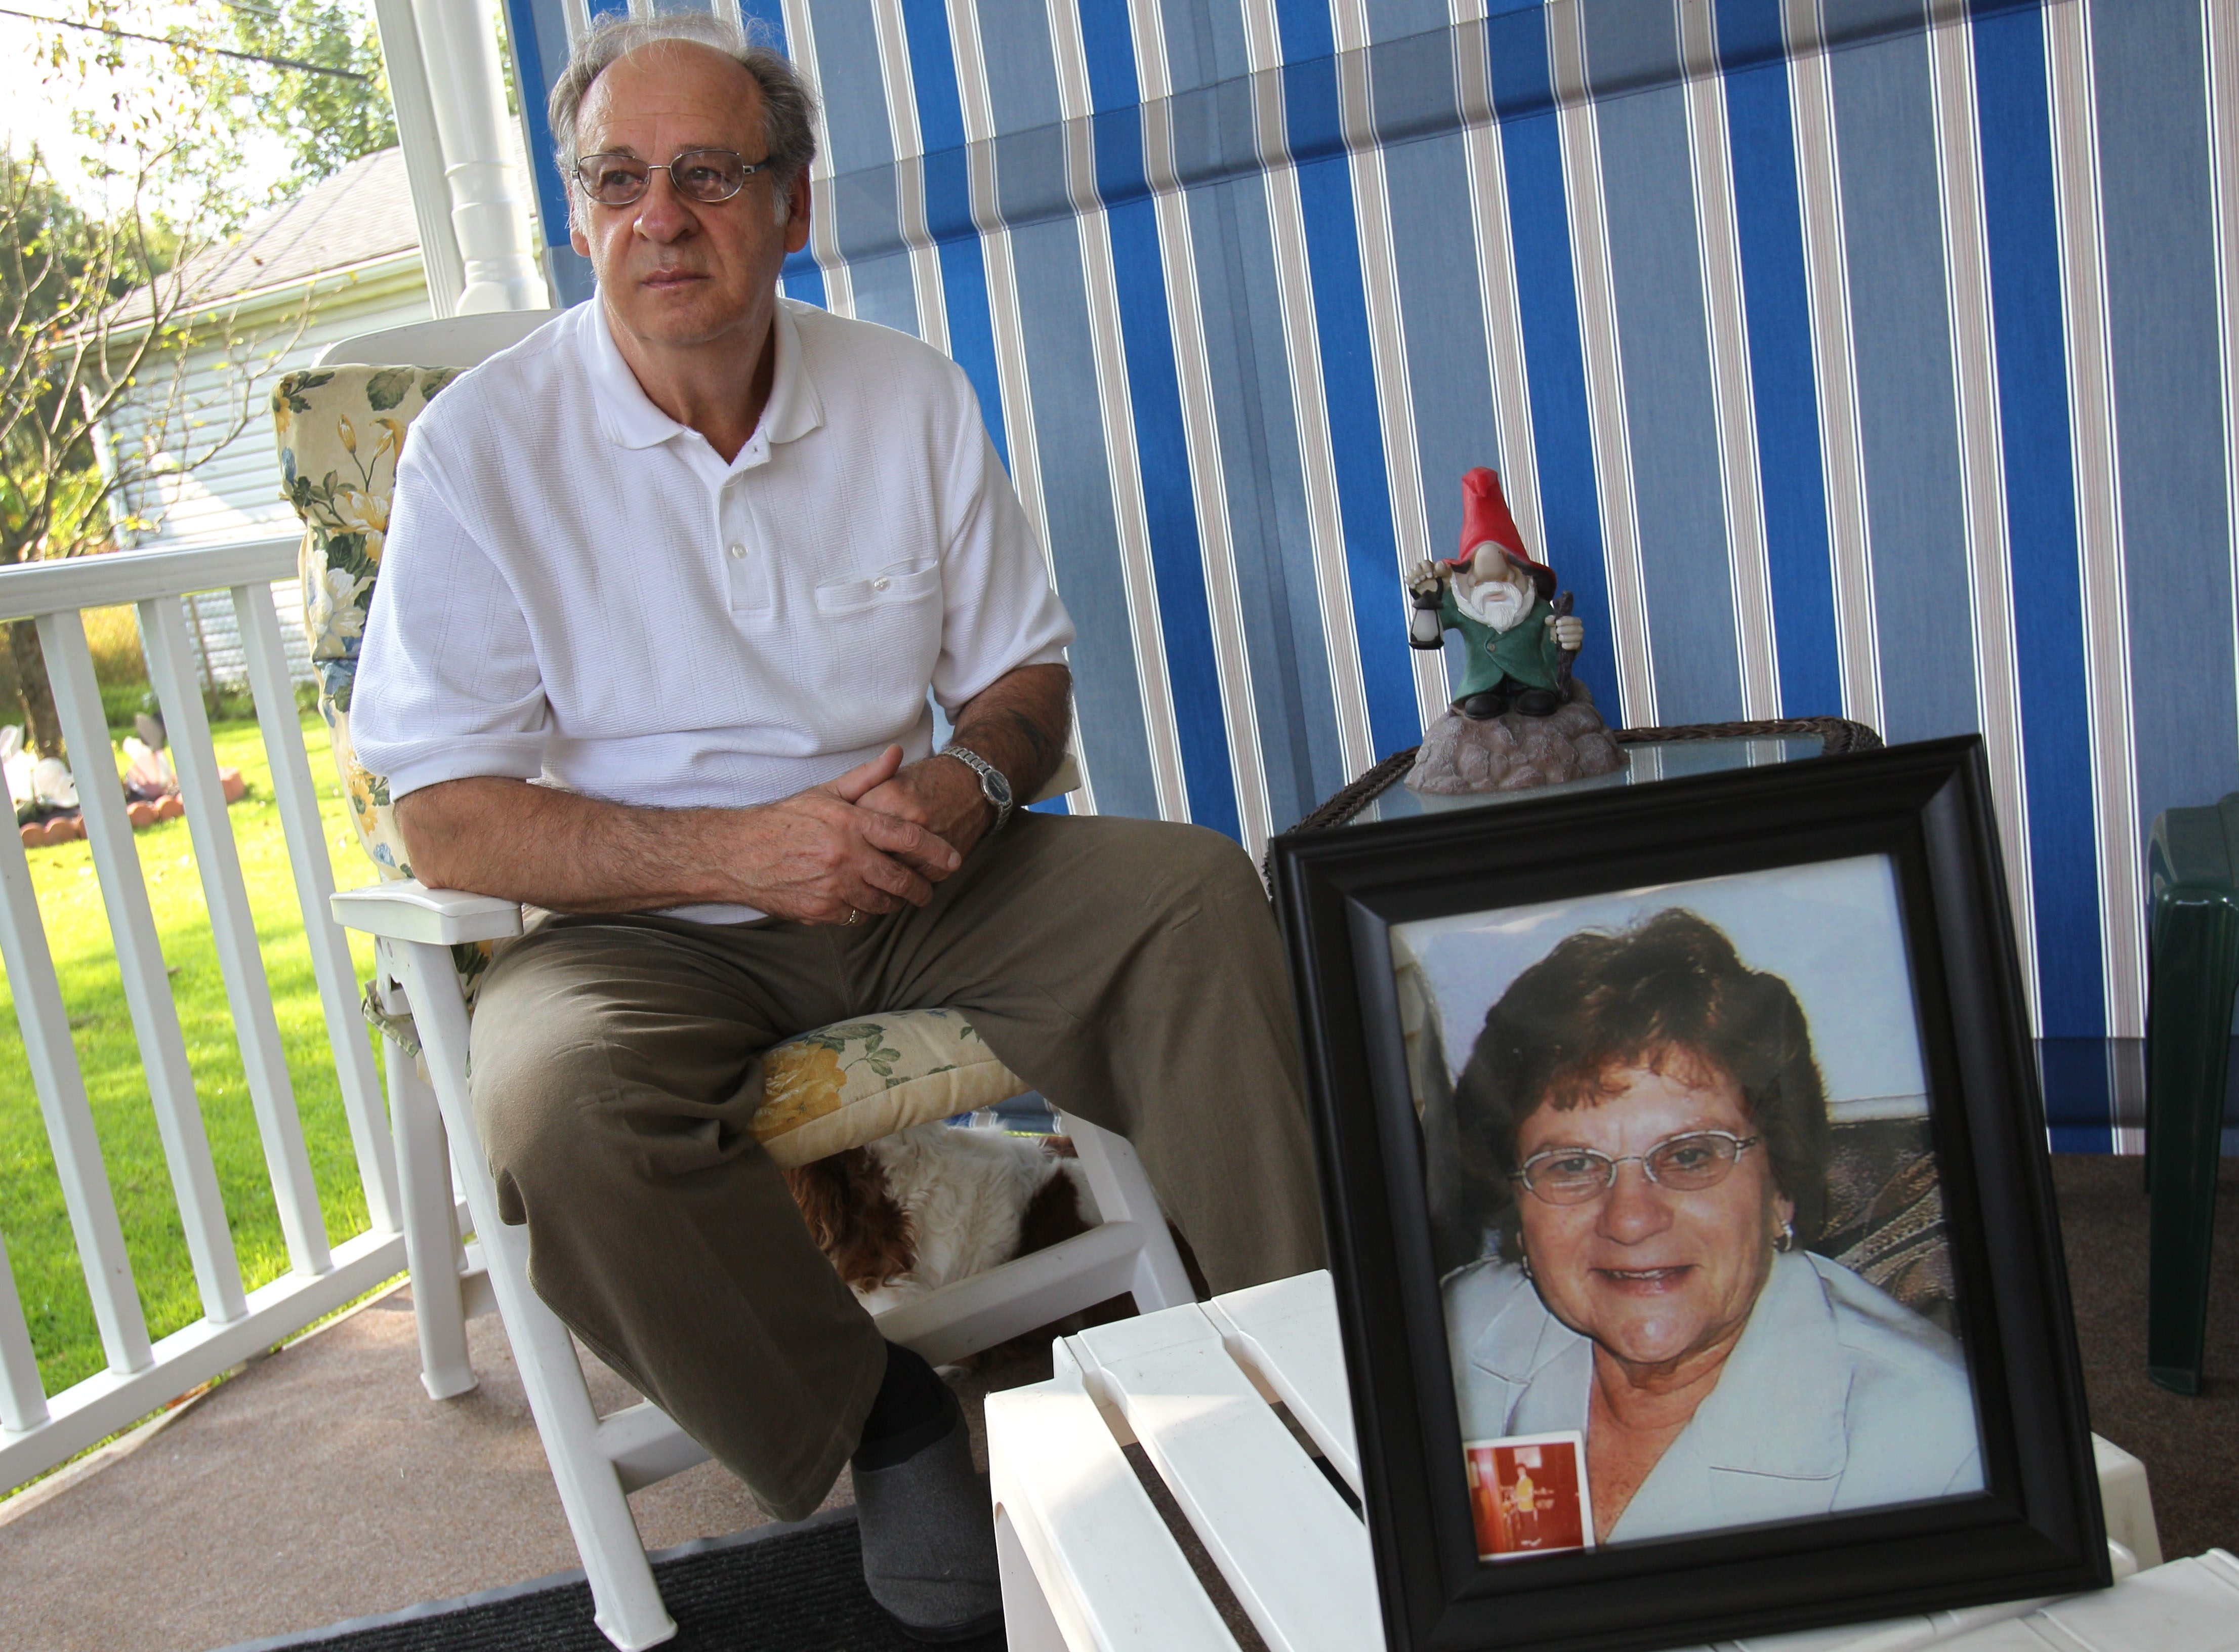 Alphonse Esposito of the City of Tonawanda is one of more than 100 people who wrote impact statements to the judge in the Tonawanda Coke pollution case. His wife died of bone cancer in 2011, and he blames her death on the plant's toxic emissions. He was photographed at home with a photograph of his wife, Joan, on Sept. 20.